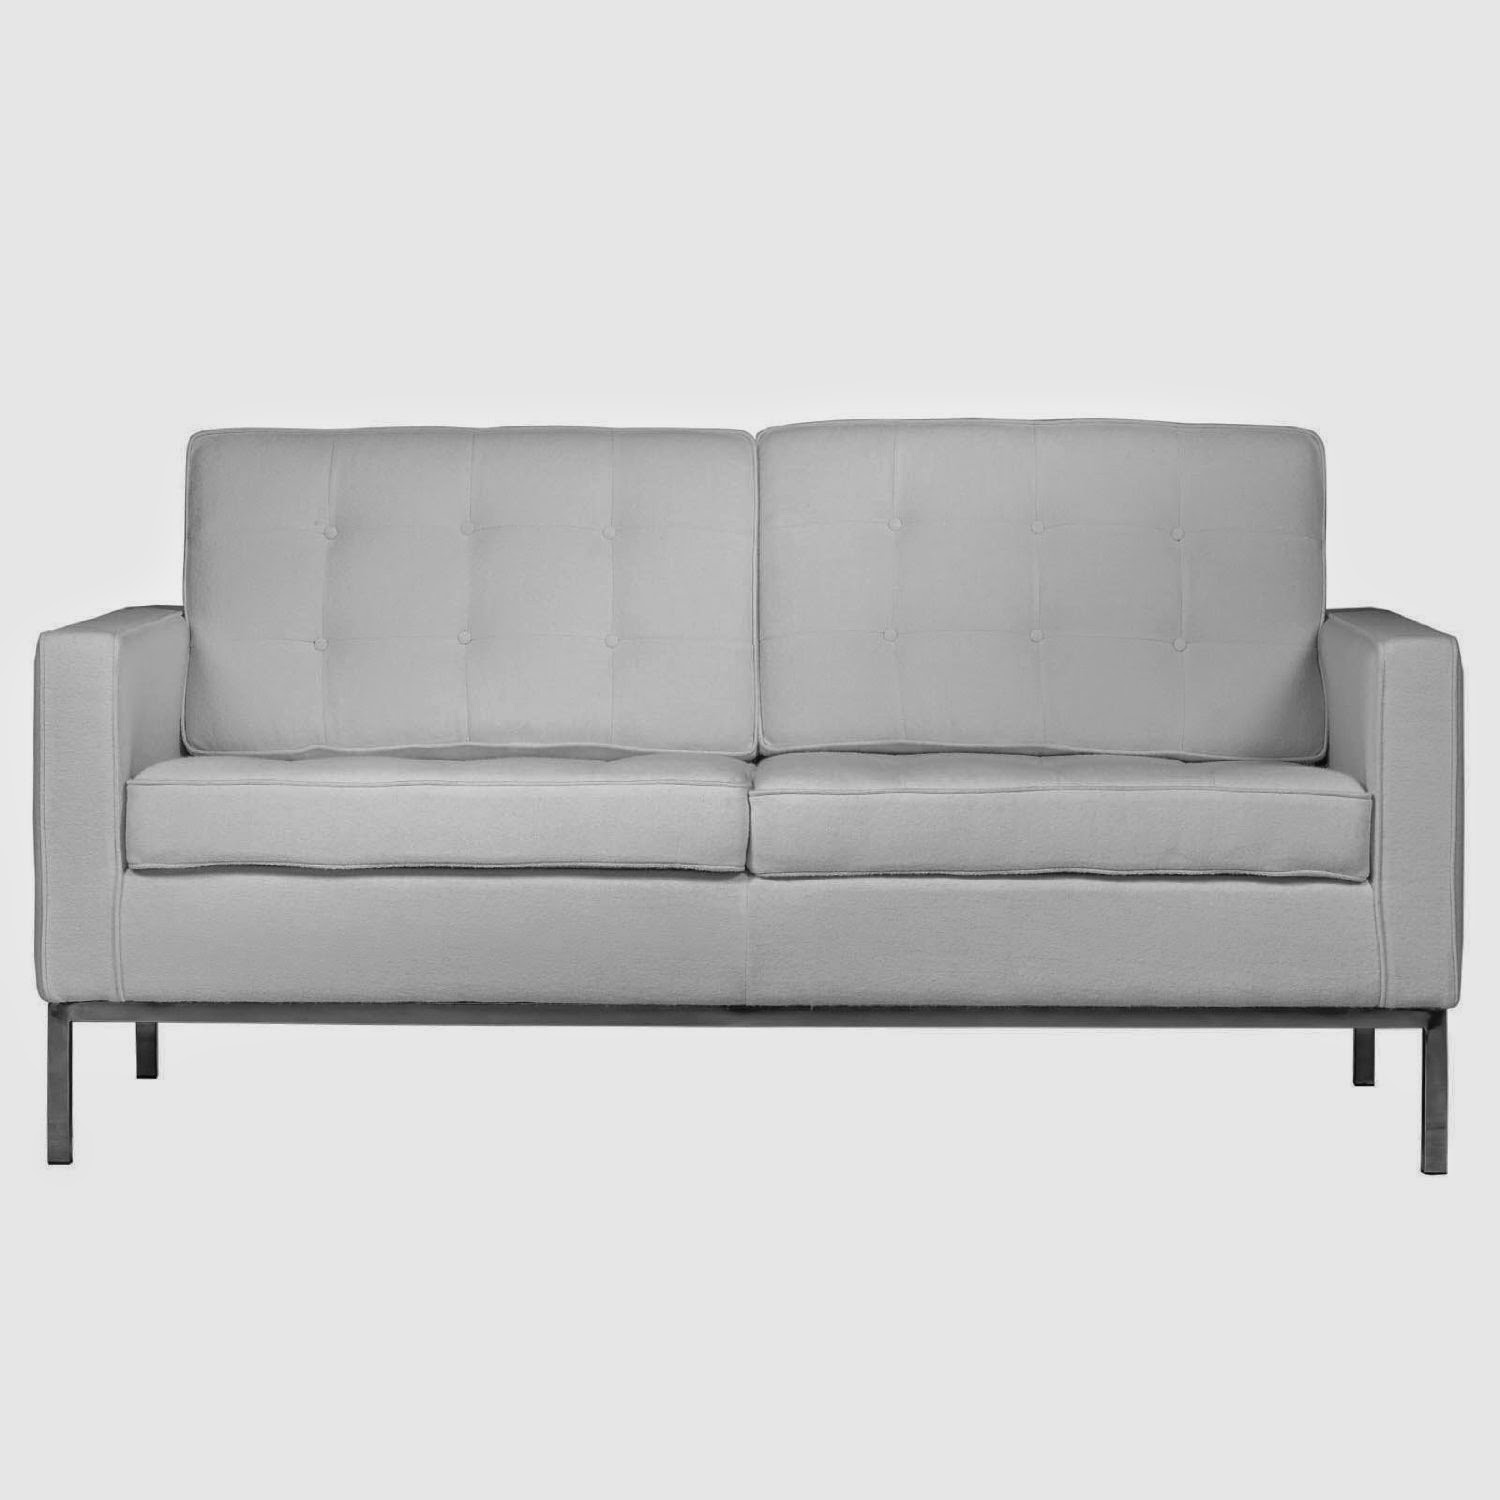 Sleeper couch small sleeper couch Small white loveseat